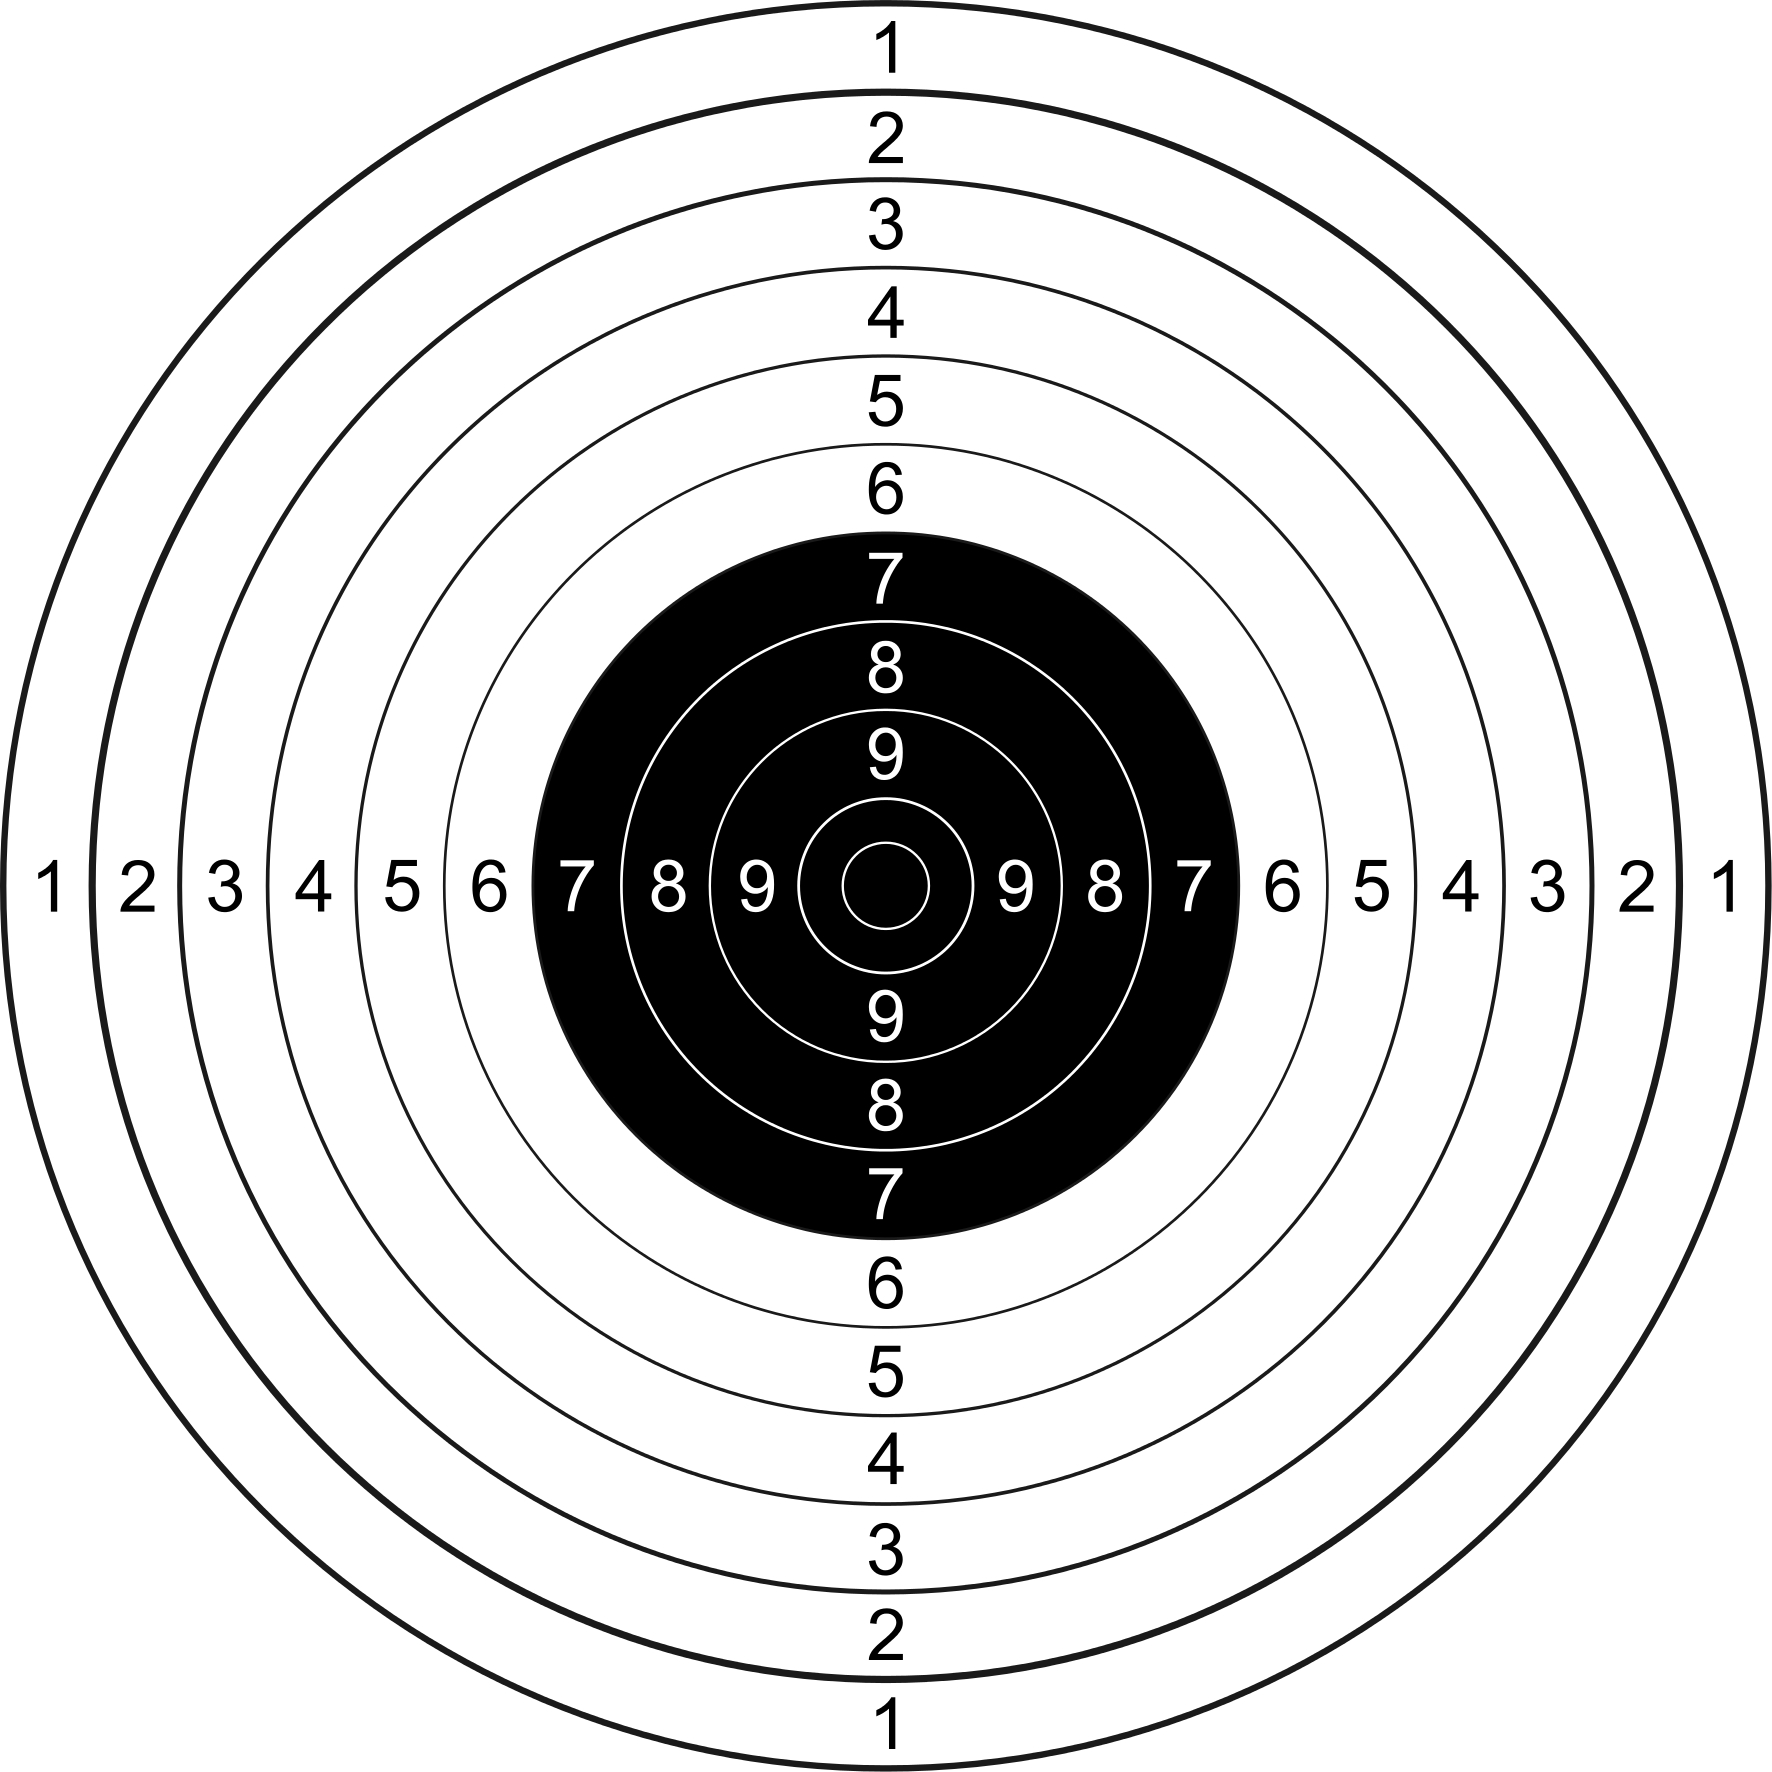 The fifty meter Free Pistol target. (Picture courtesy Wikipedia).